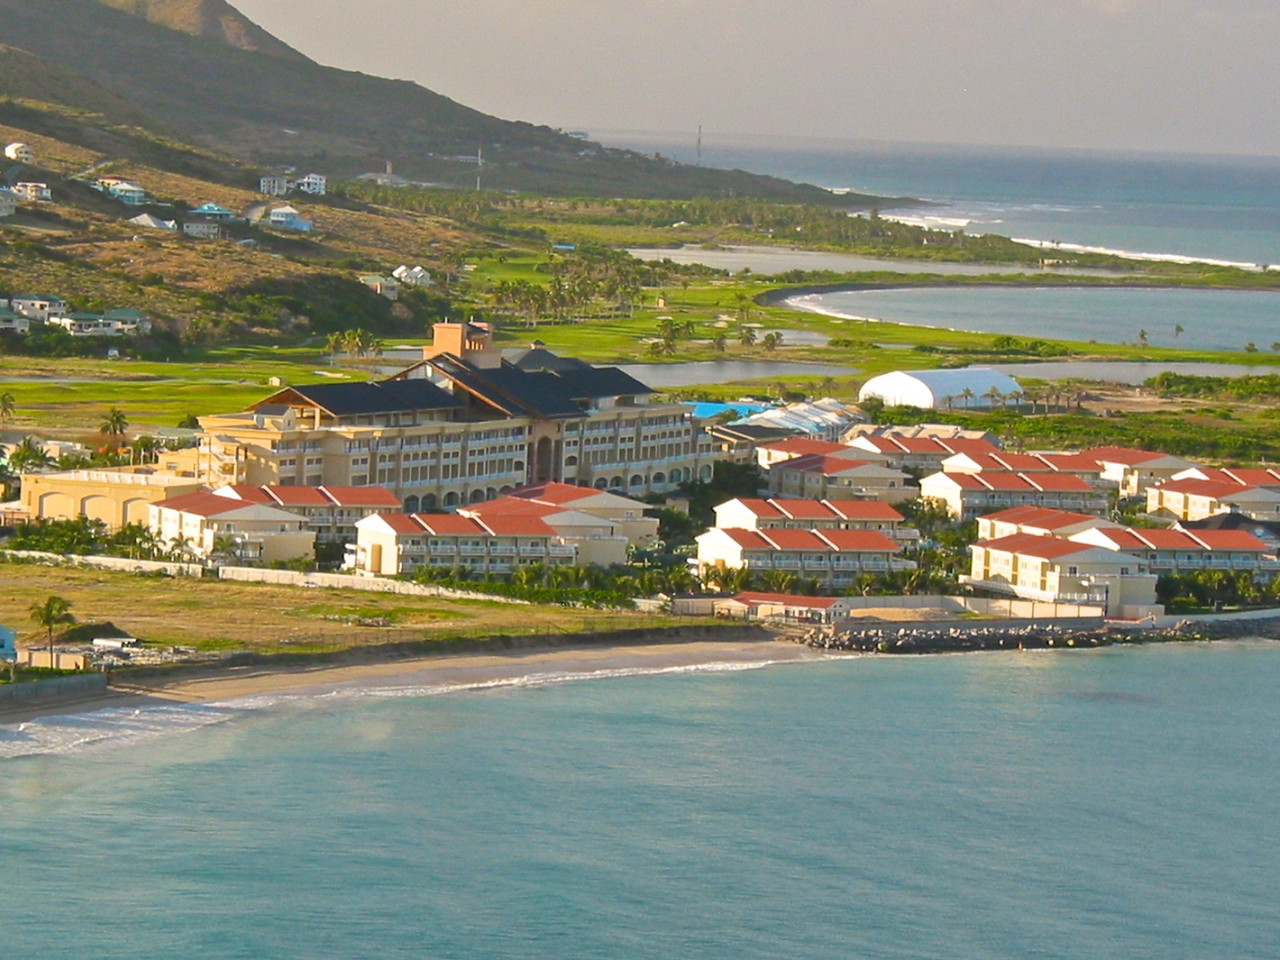 St Kitts Marriott and Casino sits directly on the coast.